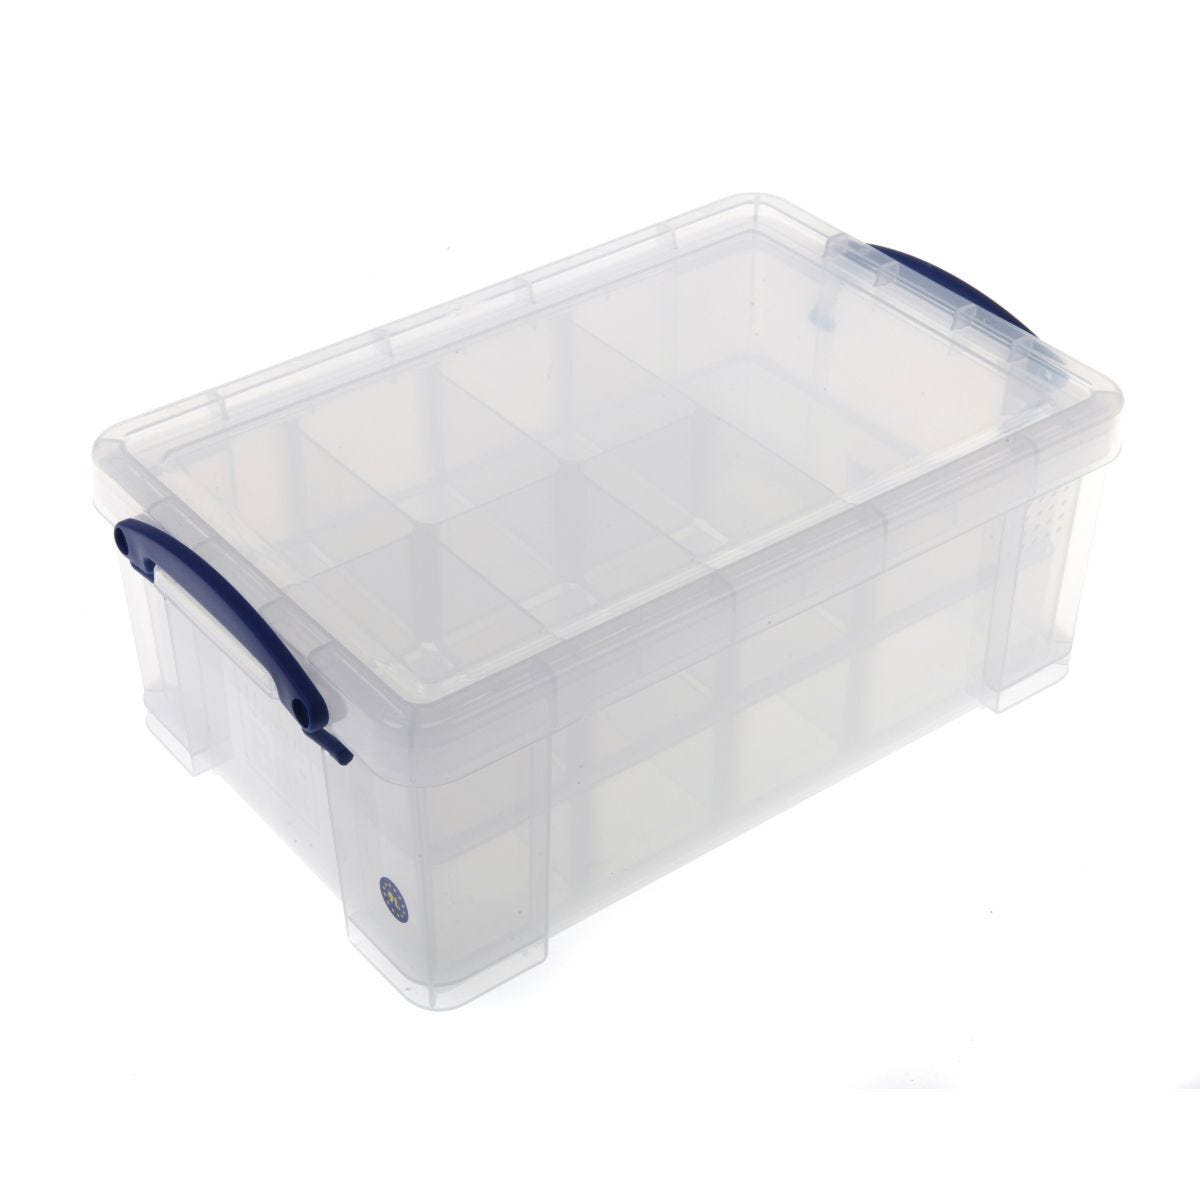 Really Useful Storage Box 9 Litre with Tray Inserts